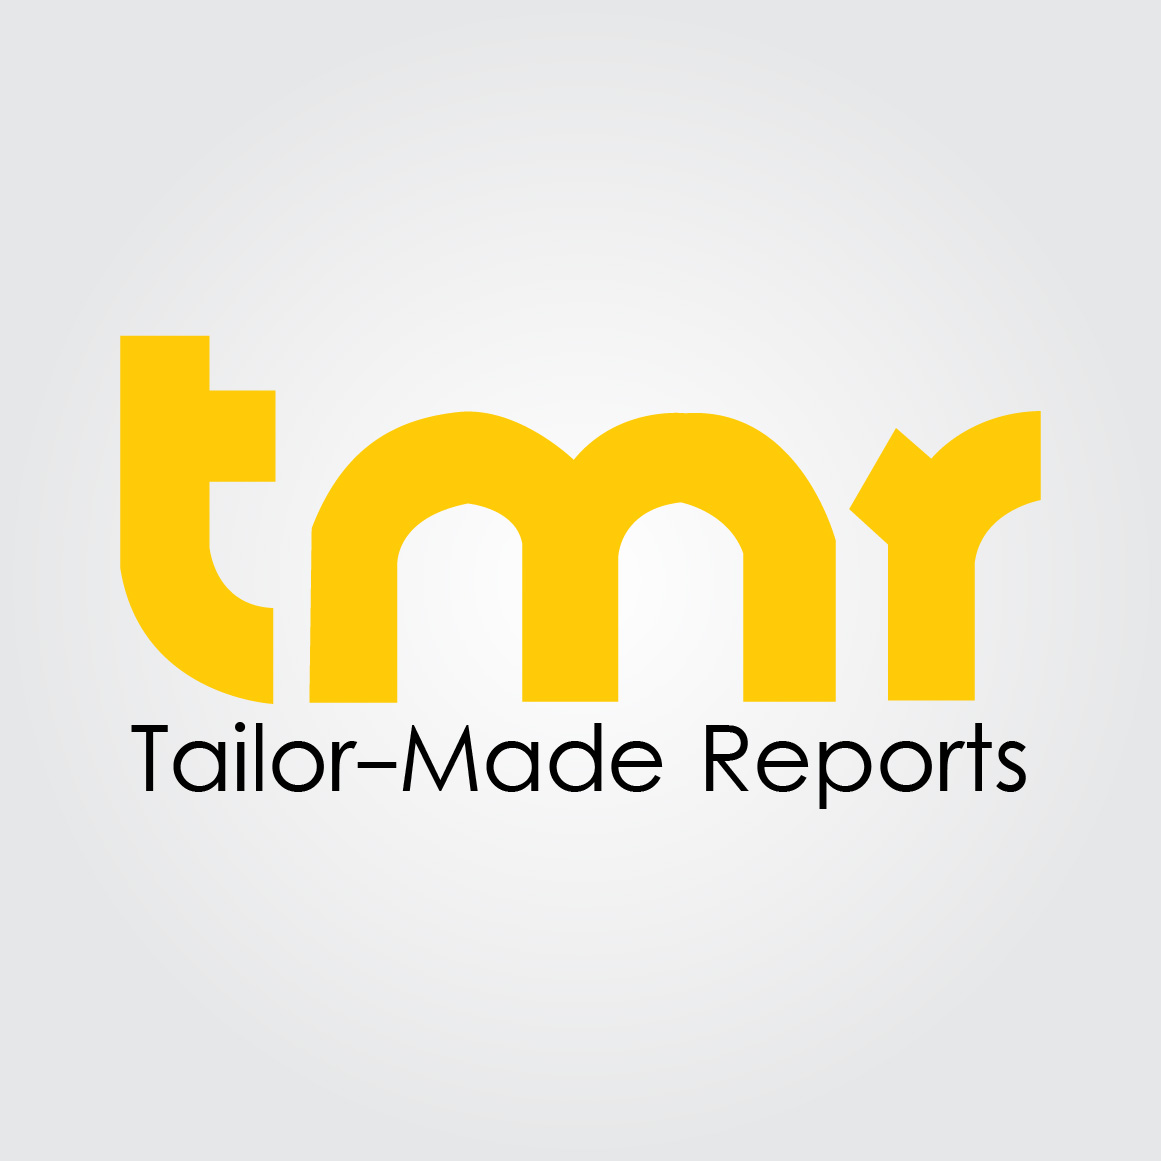 Explosion-Proof Lighting Market is bound to gain extensive growth to 2030 | TMR Research Study